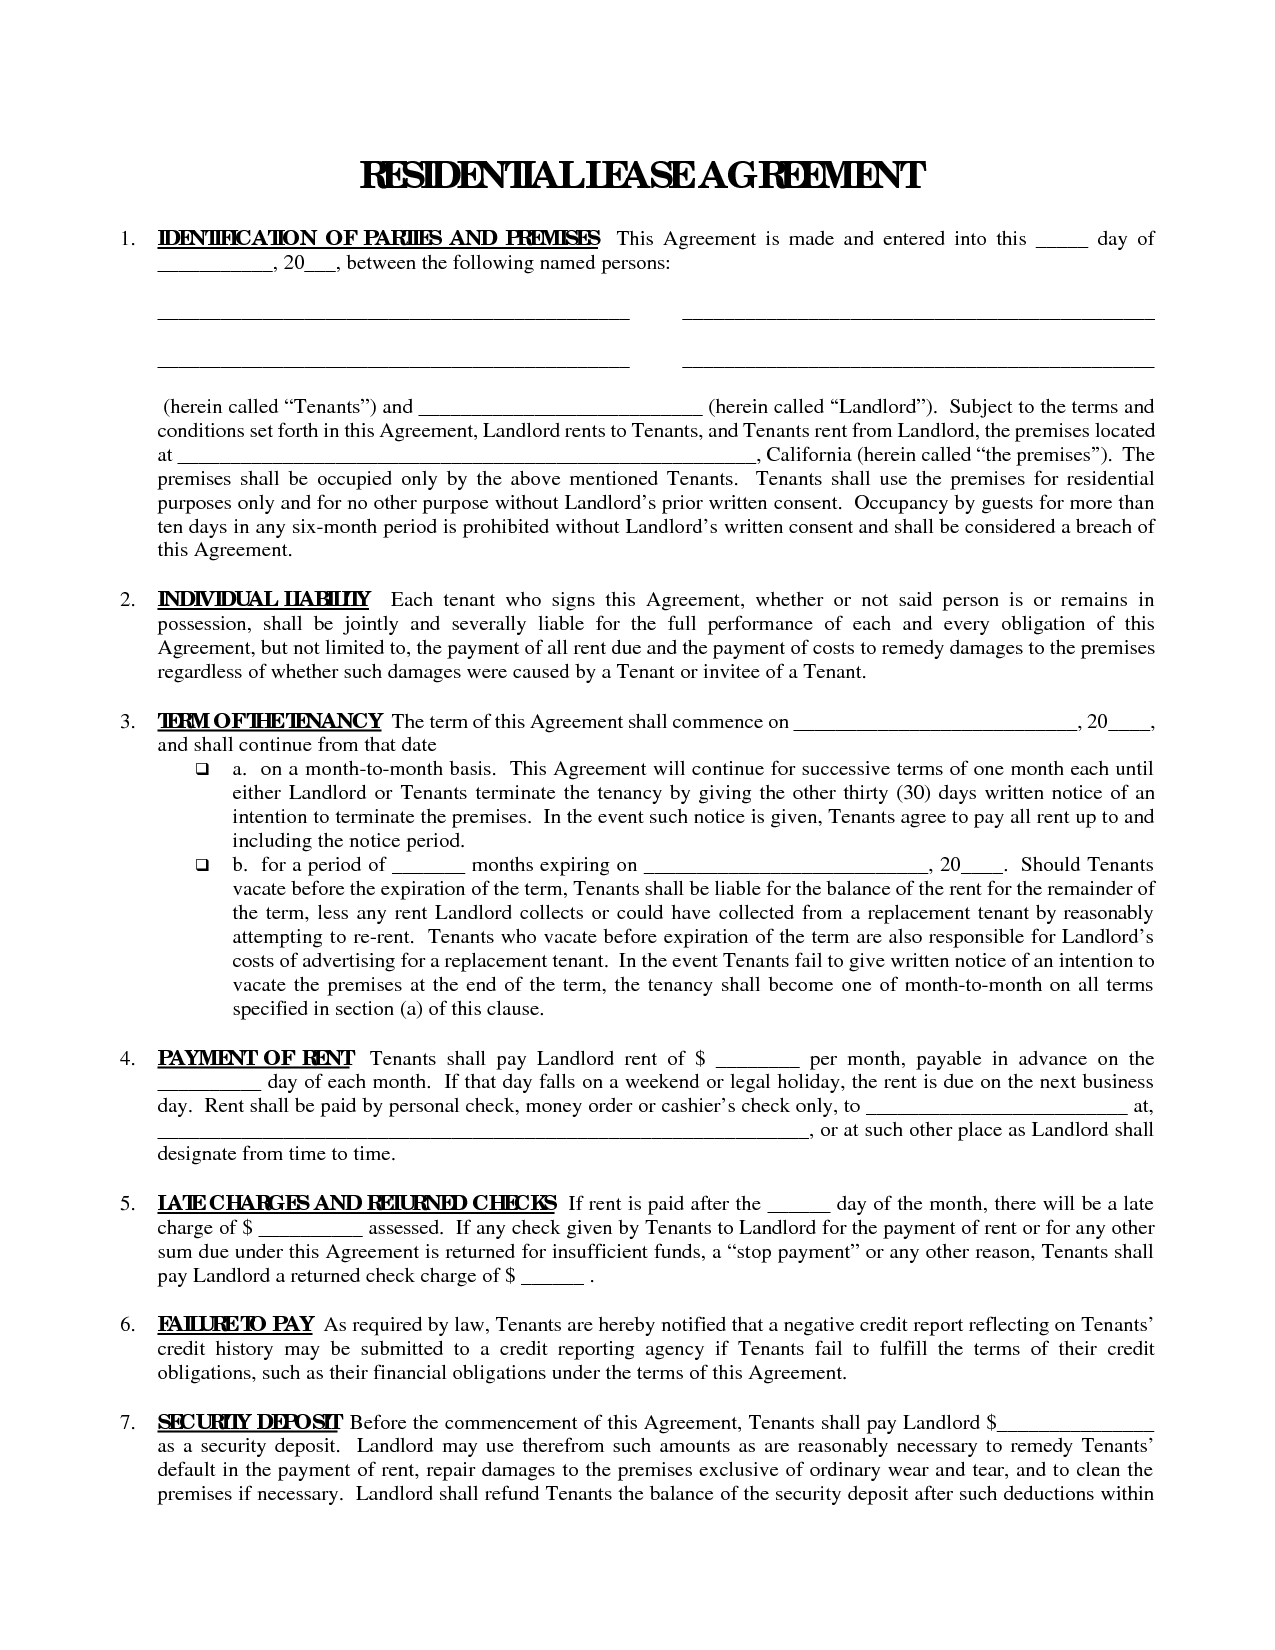 Marvelous Printable Residential Free House Lease Agreement | Residential Lease  Agreement: Real Estate Legal Form Pertaining To Printable Rental Agreement Form Free